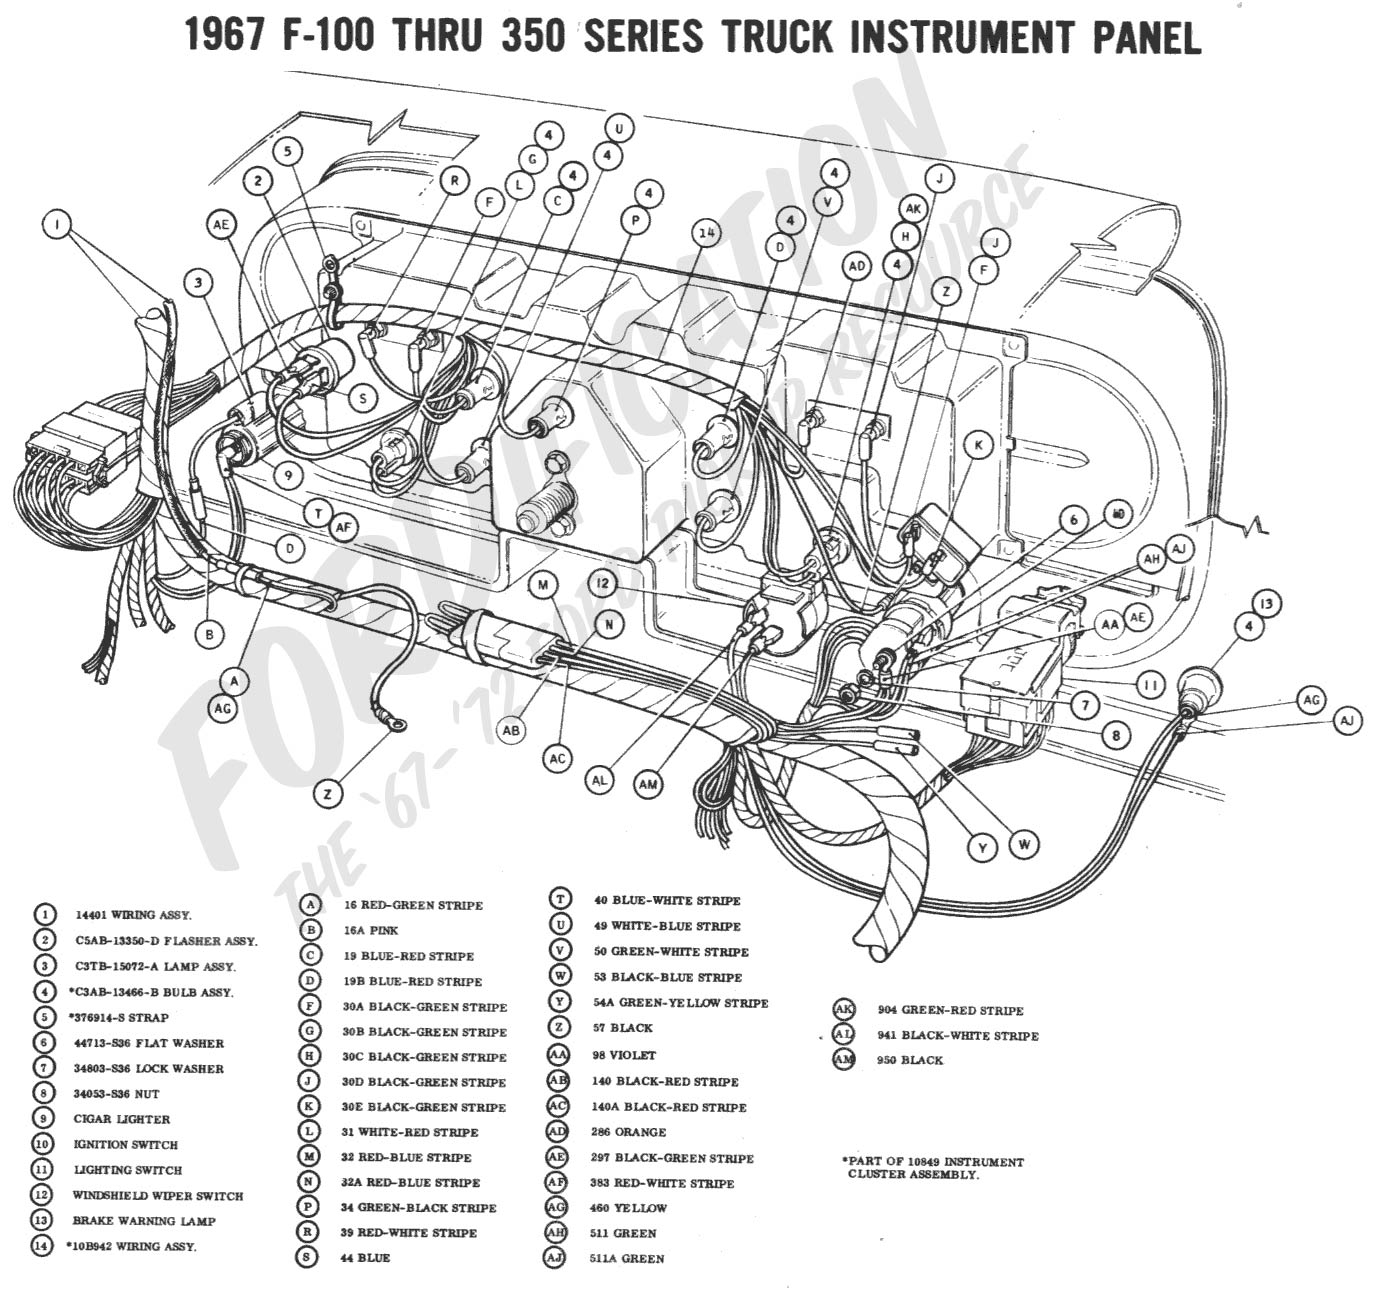 Chevrolet Aveo5 Wiring Diagram besides 87 Chevy Camaro 5 0 Engine Diagram furthermore Chevy 350 Firing Order Diagram moreover Schematics h additionally 1995 K2500 Coolant Temp Sensor Location. on chevy 350 temp sensor location